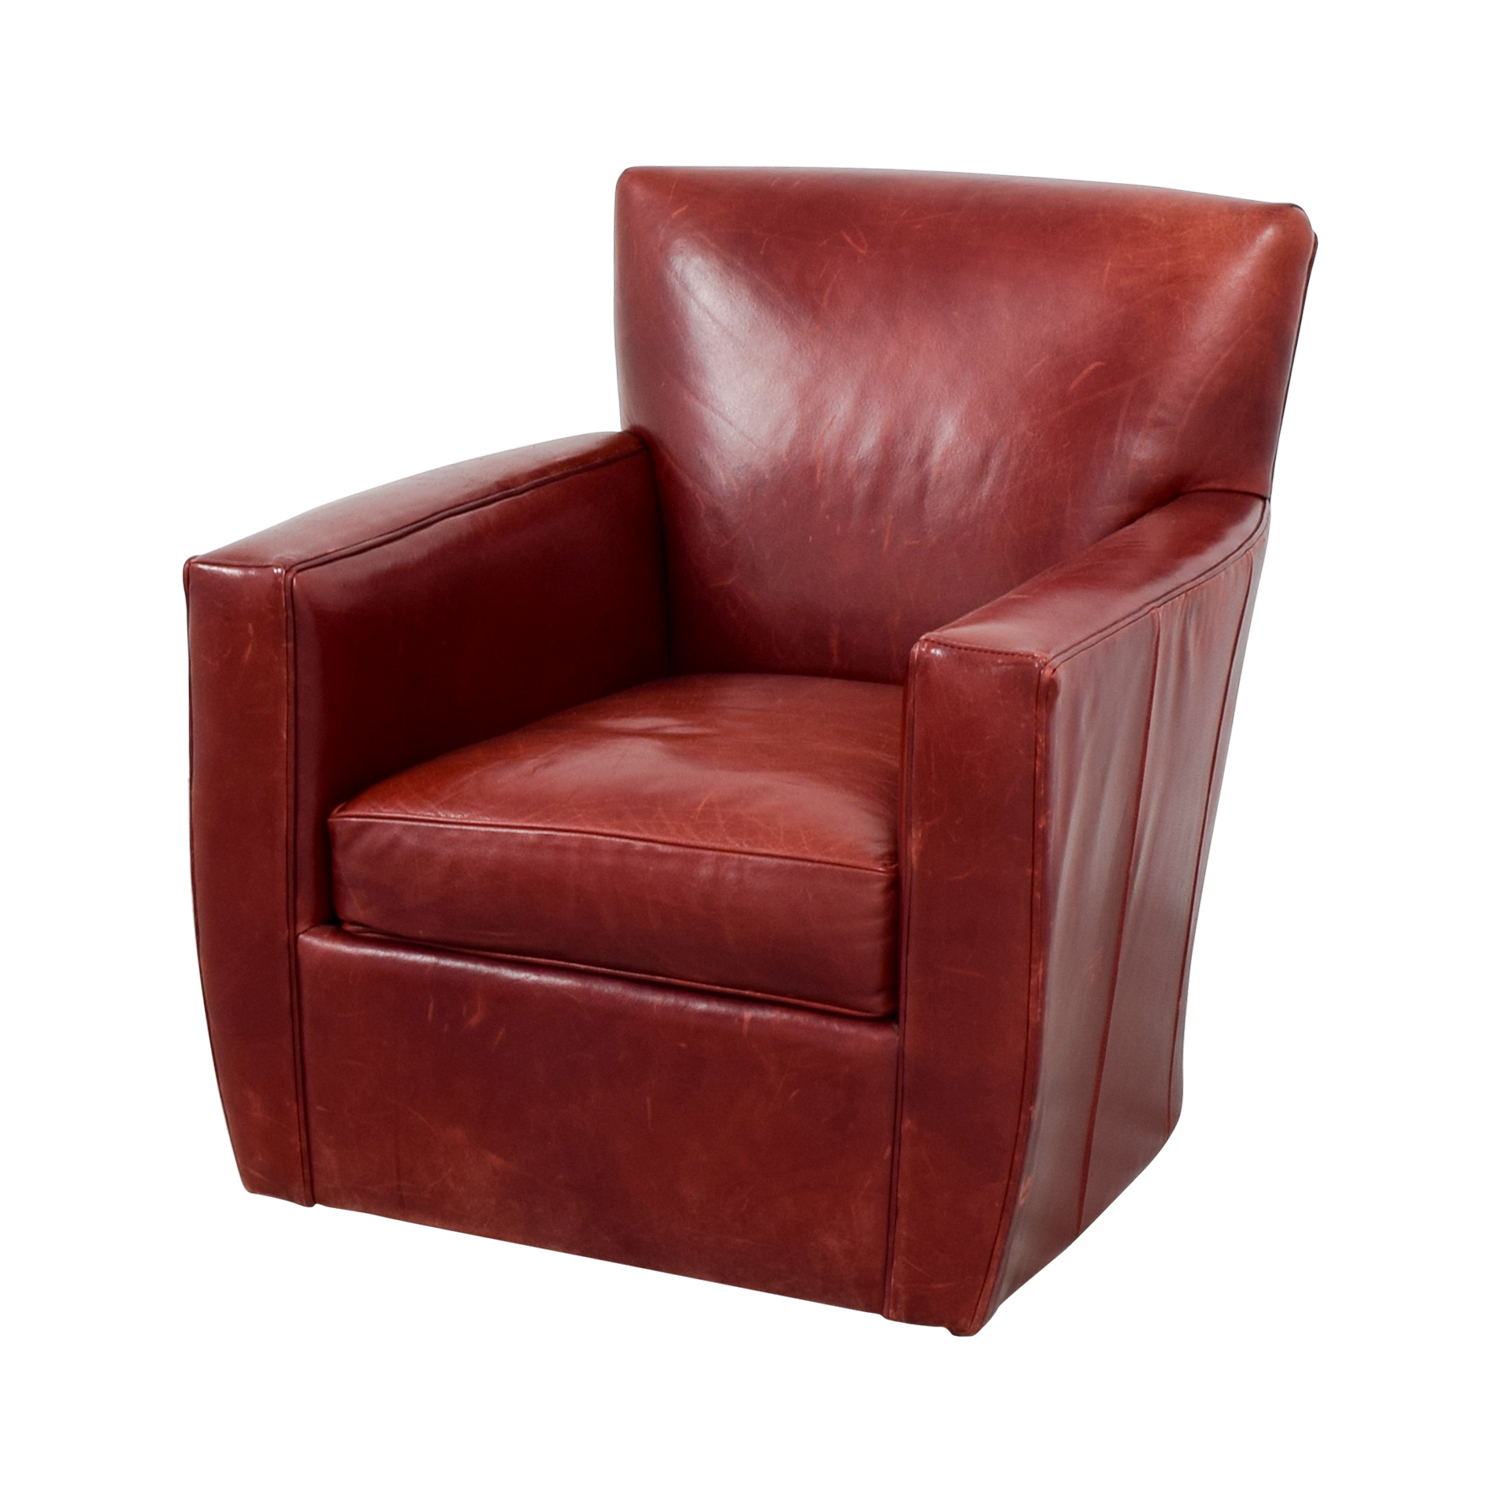 Pleasant 79 Off Crate Barrel Crate Barrel Leather Swivel Chair Chairs Uwap Interior Chair Design Uwaporg